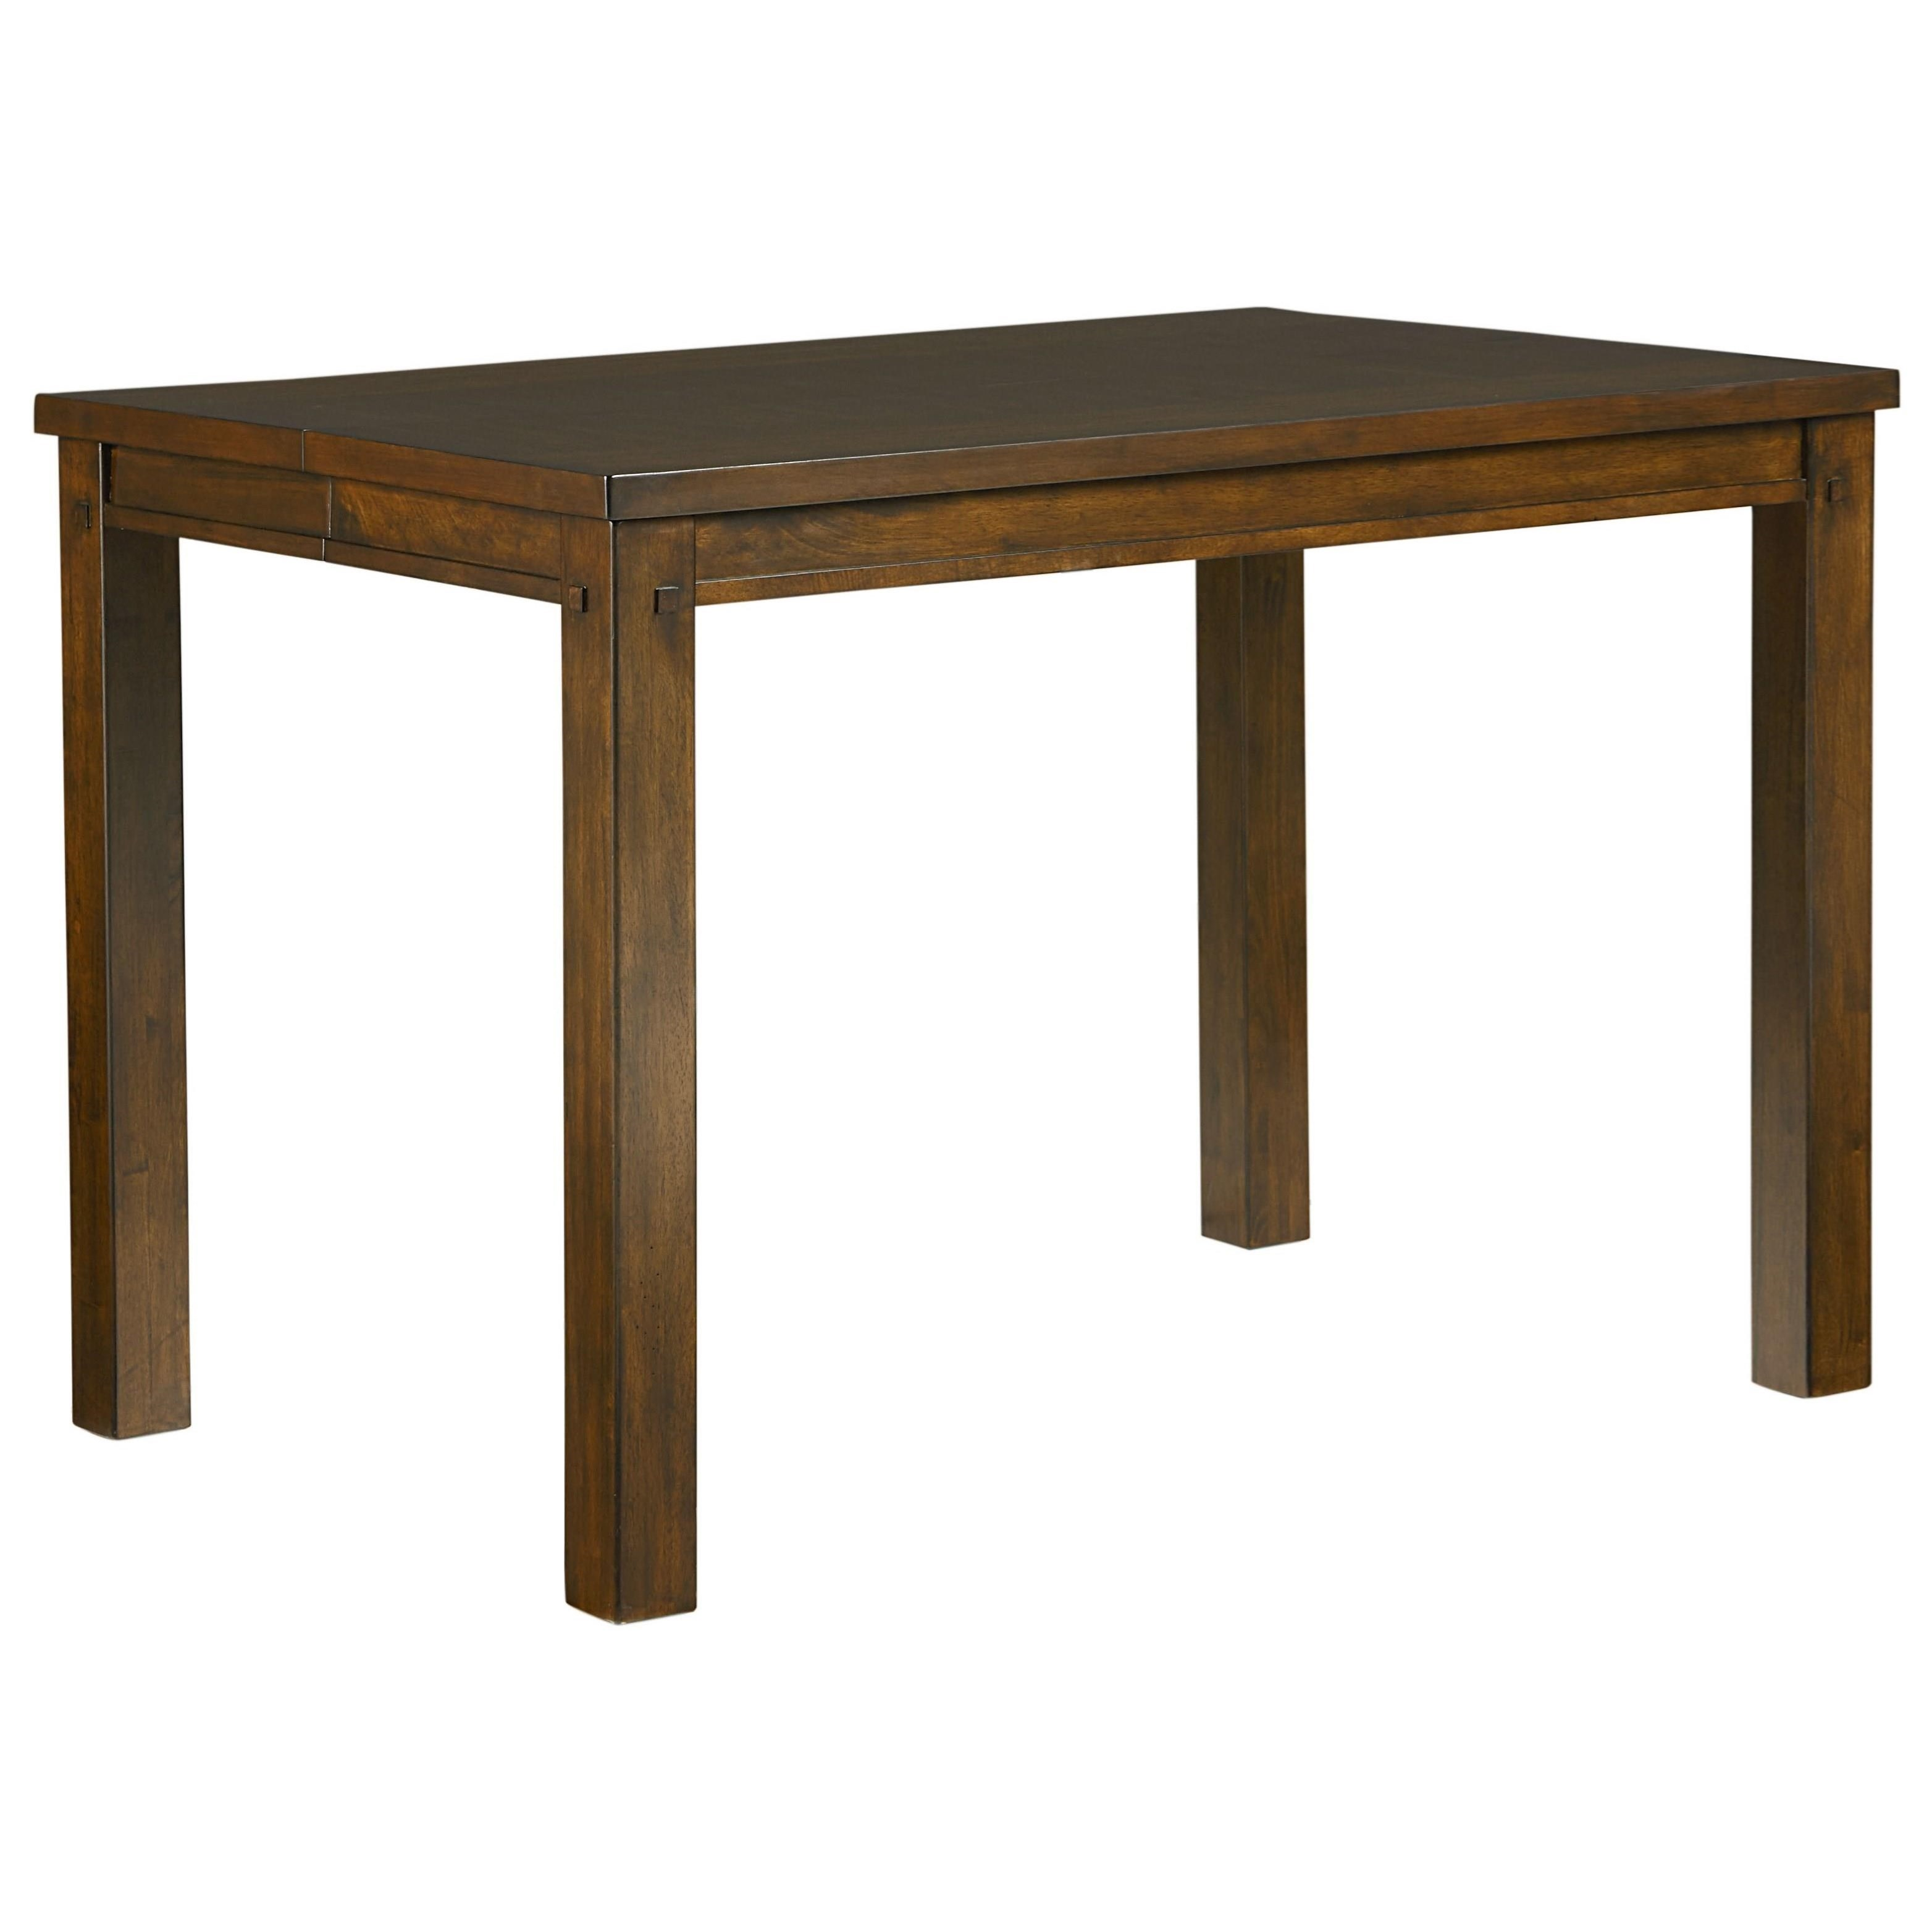 Standard Furniture Cameron Counter Height Table - Item Number: 14316